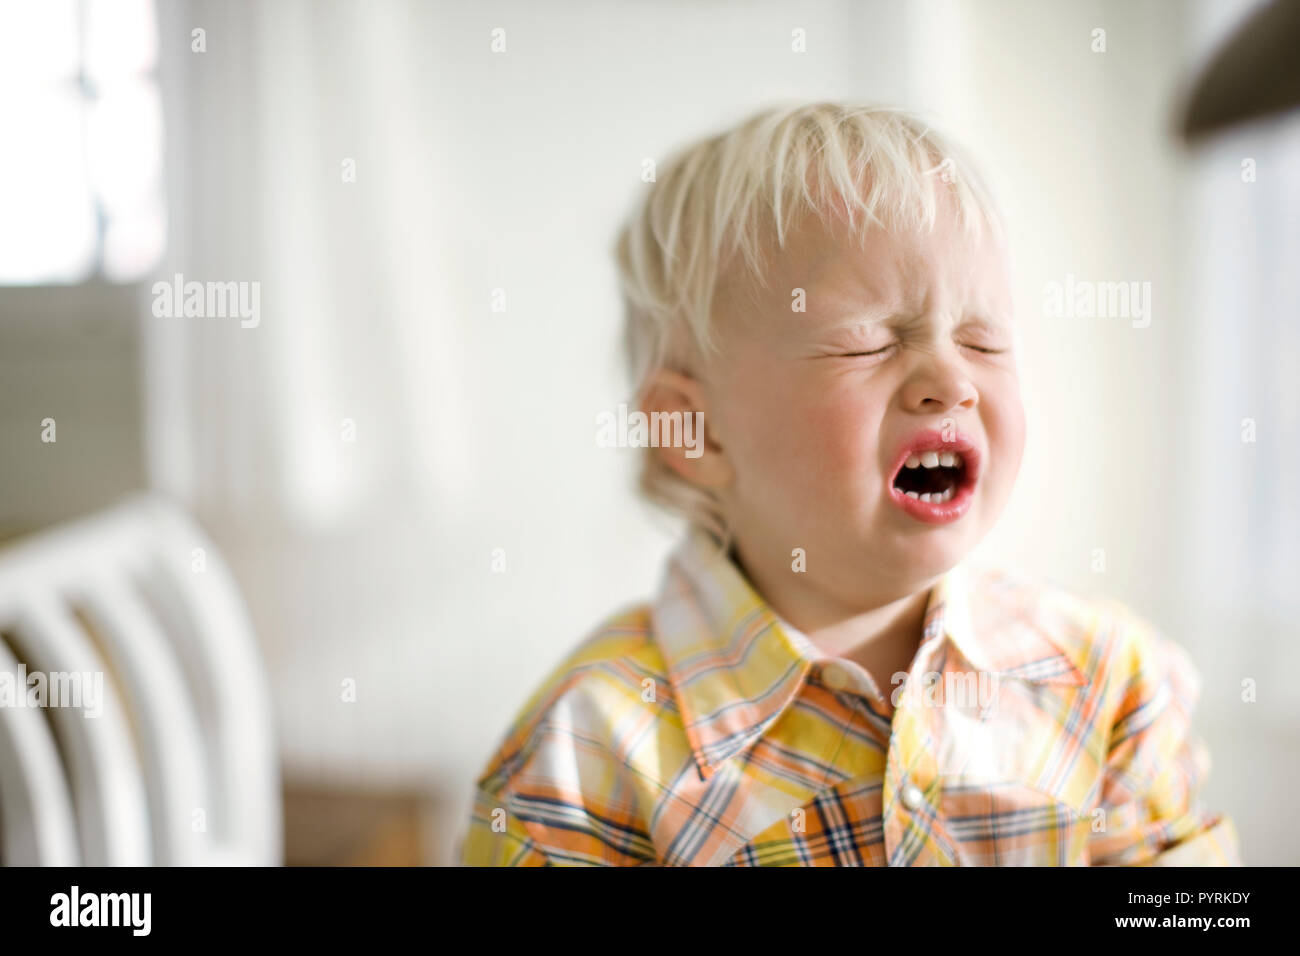 Upset toddler screwing his face up. - Stock Image